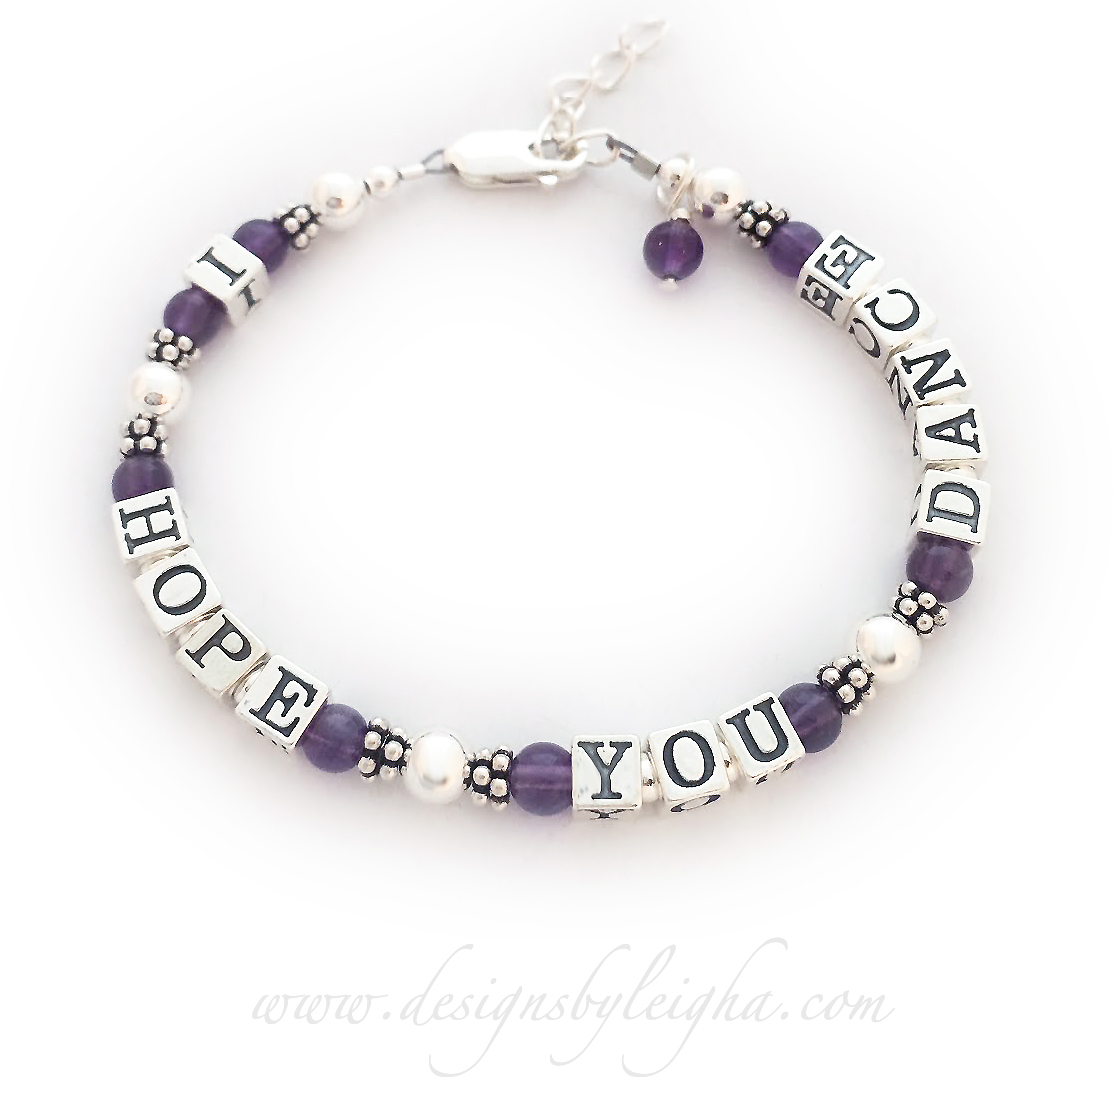 Amethyst I HOPE YOU DANCE Bracelet with an extension clasp